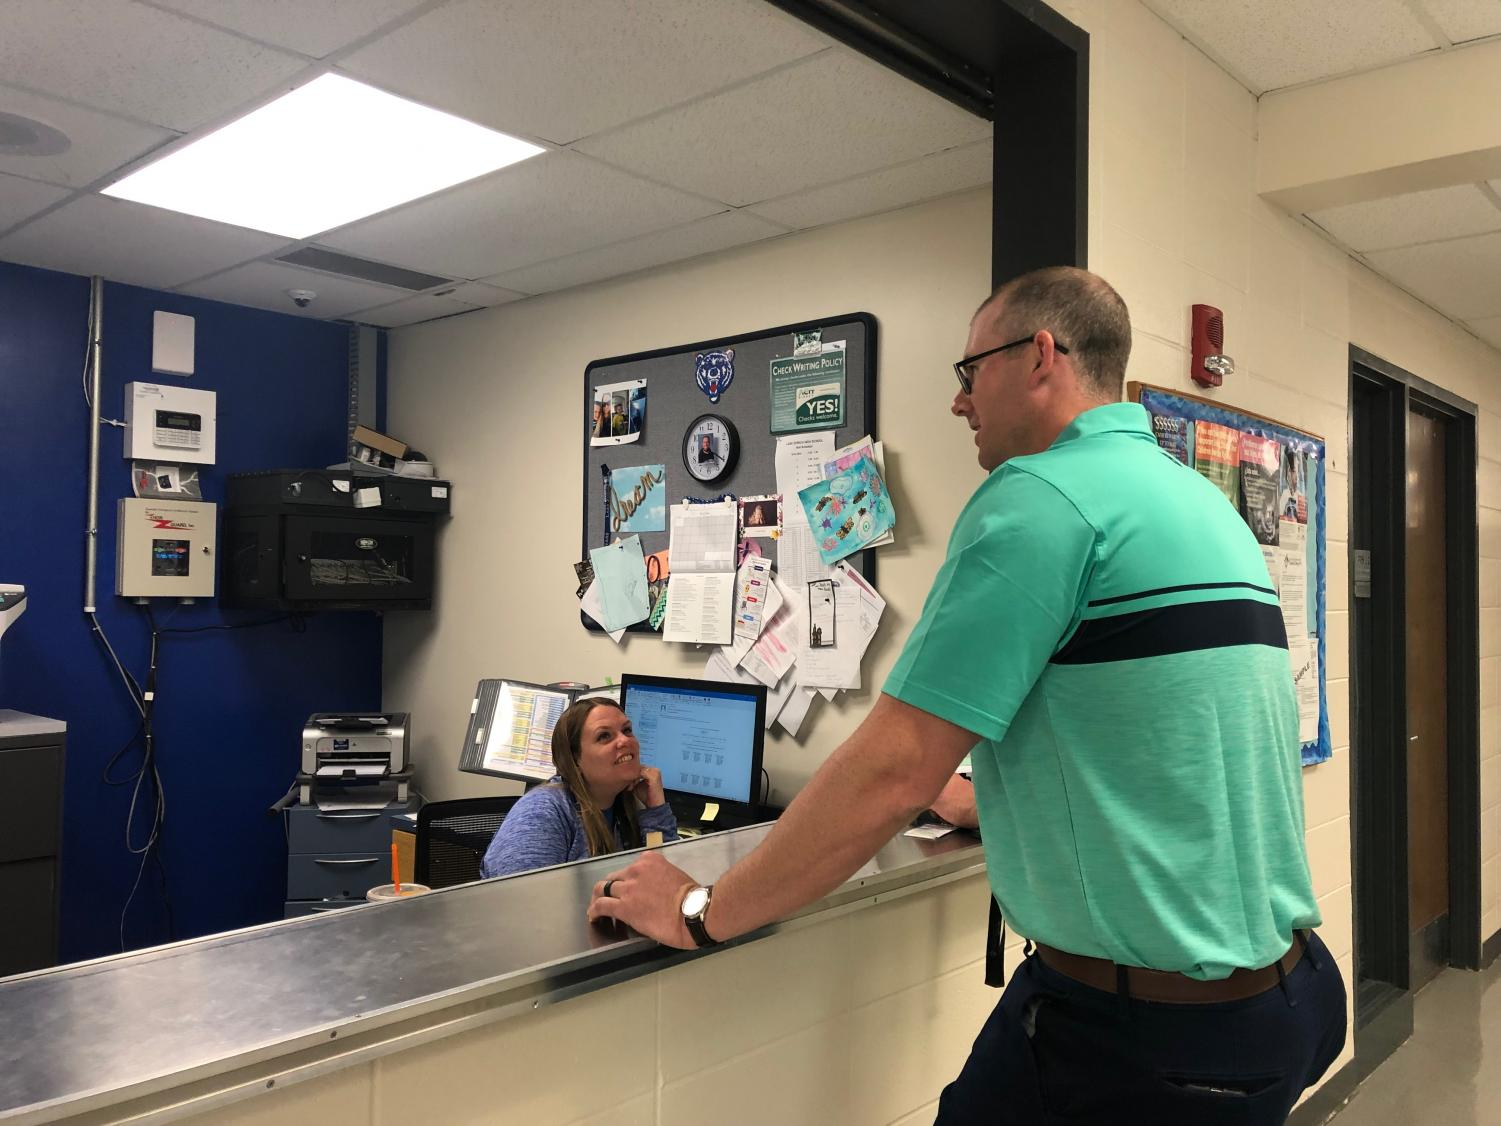 Jeretina stops by the bookkeeper's office as he checks in on all the staff in the morning. Along with the teachers in the building, he will also email the online teachers just to